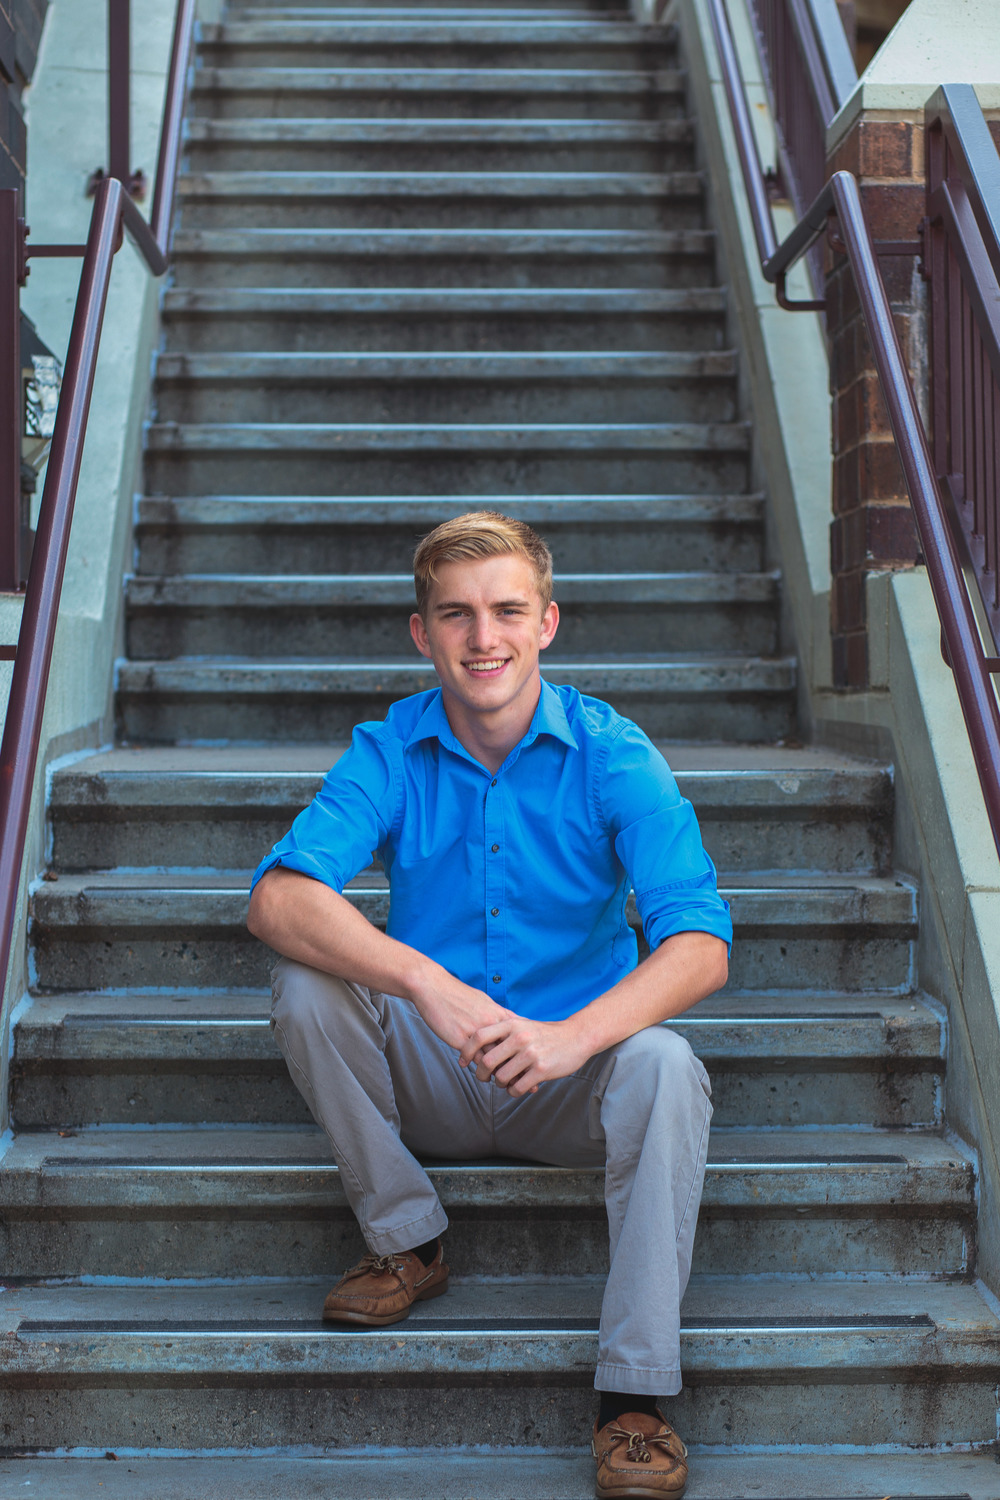 Urban High School Senior Guy Portraits Minneapolis MN